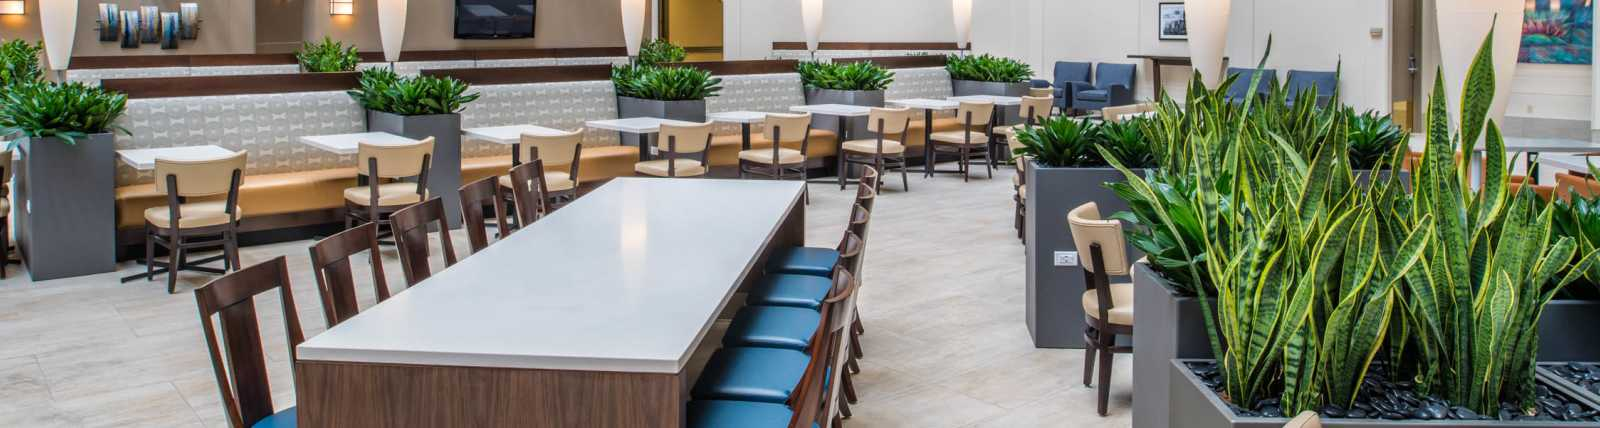 meeting-facility-Embassy_Suites_Seattle-Tacoma_International_Airport_Meeting_Facility-6.jpg